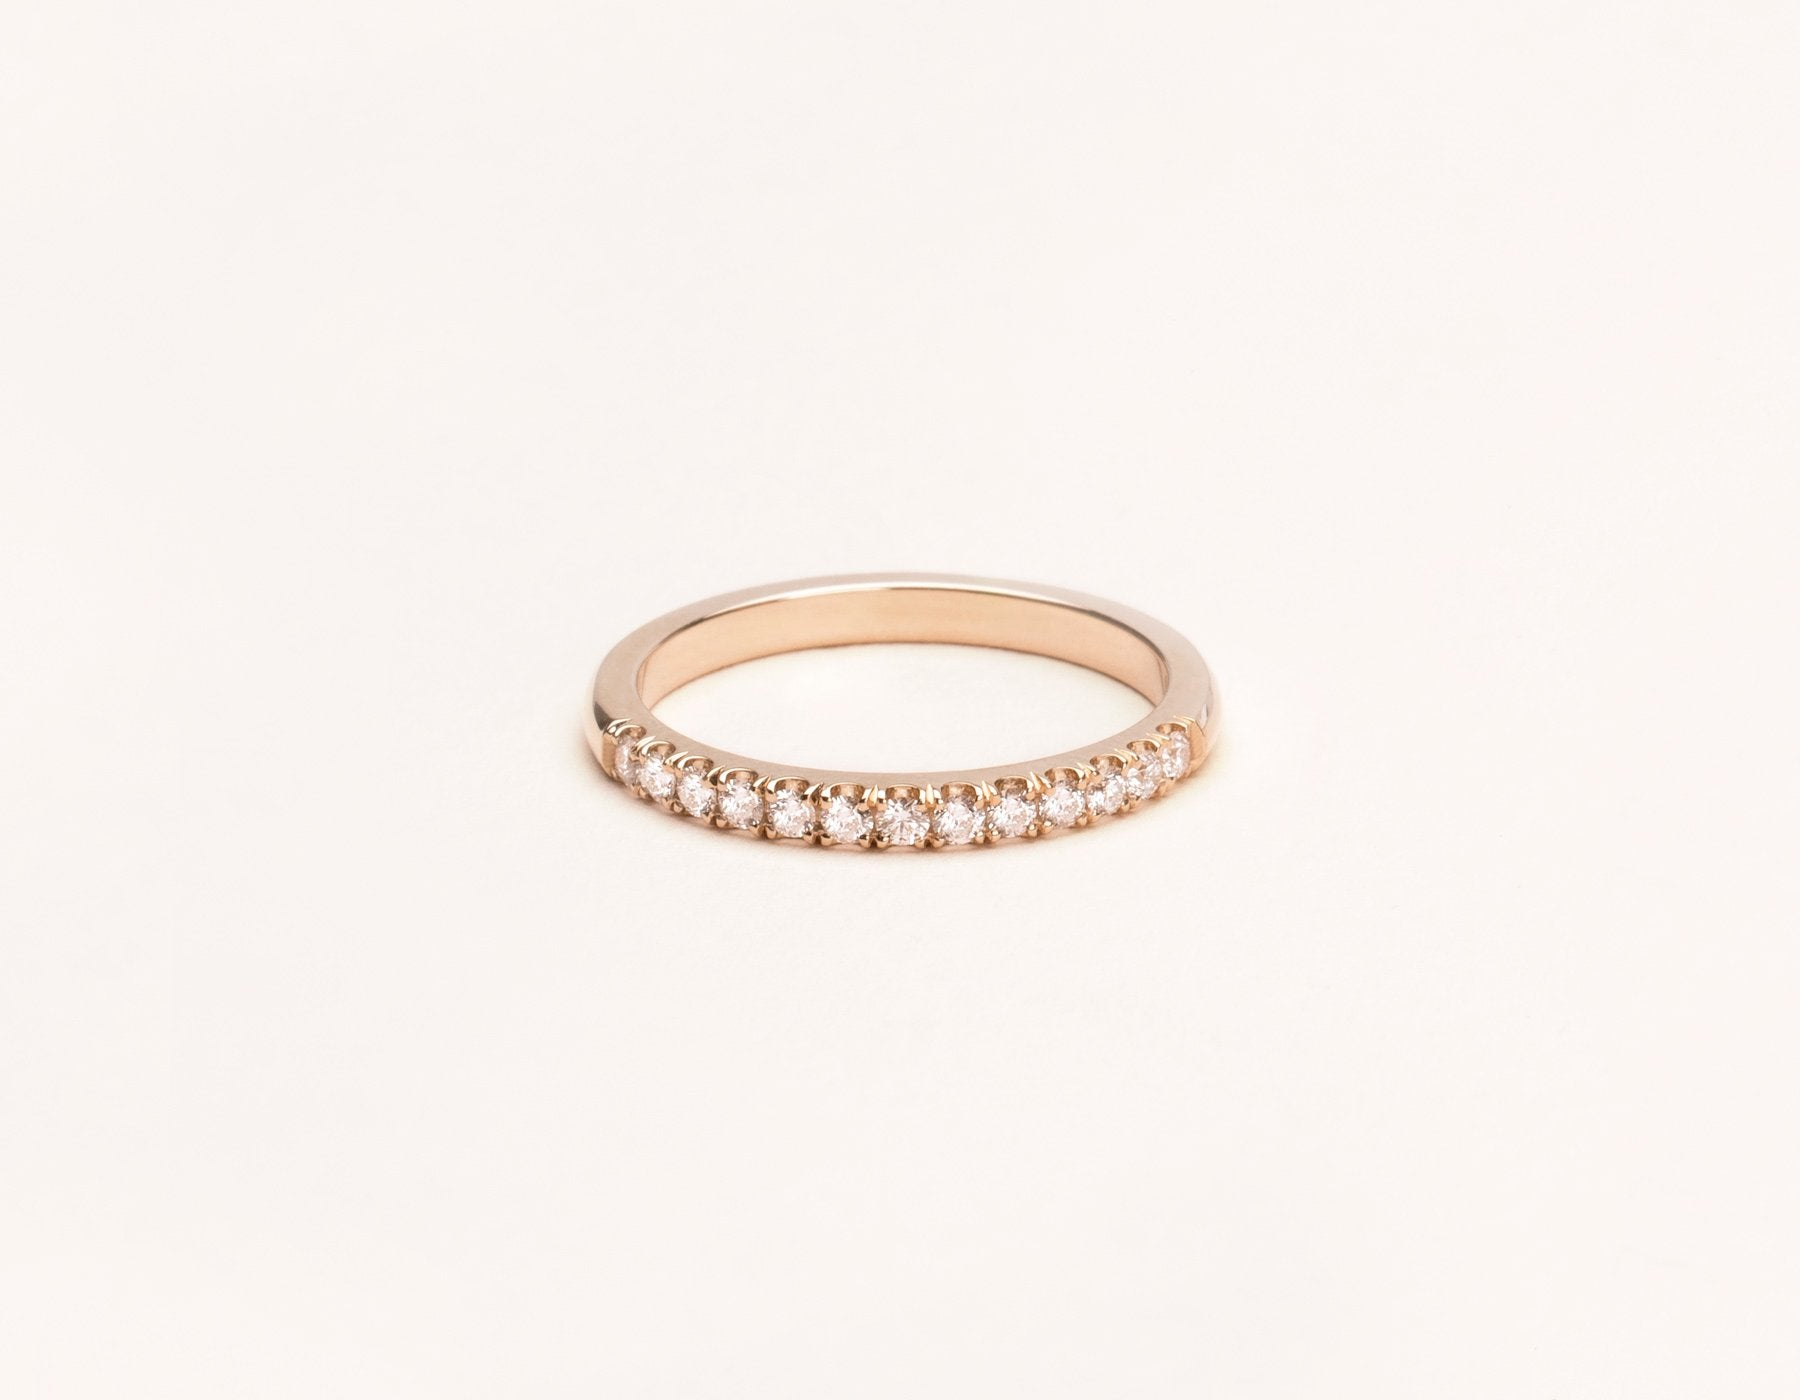 Simple classic 14k solid gold Large Diamond Band Vrai & Oro, 14K Rose Gold